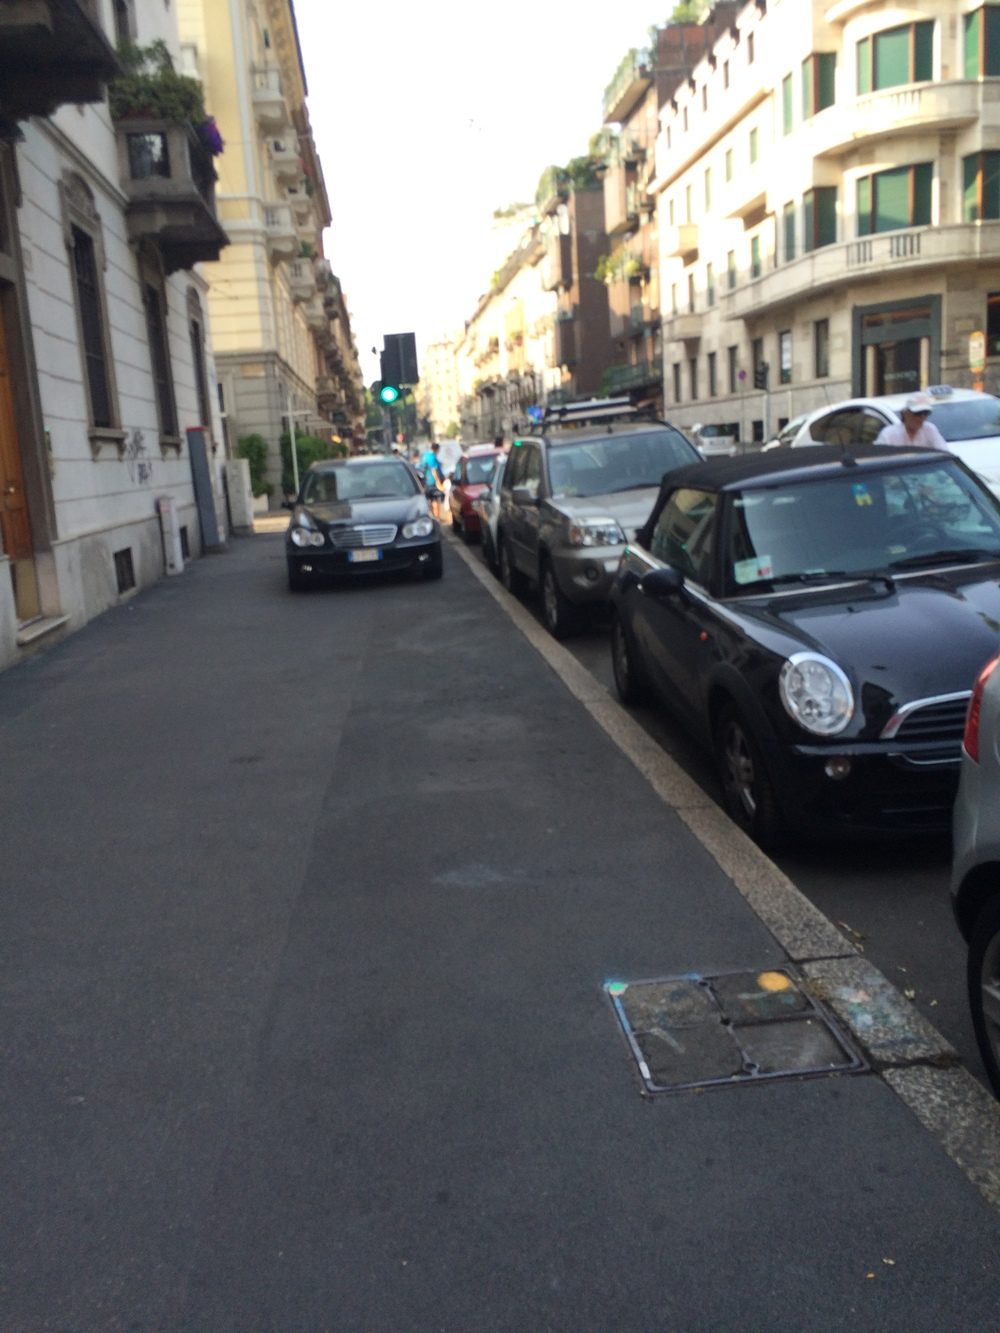 For instance, here is a car just casually parked on the sidewalk. In Milan, anywhere is a parking space if you just believe!